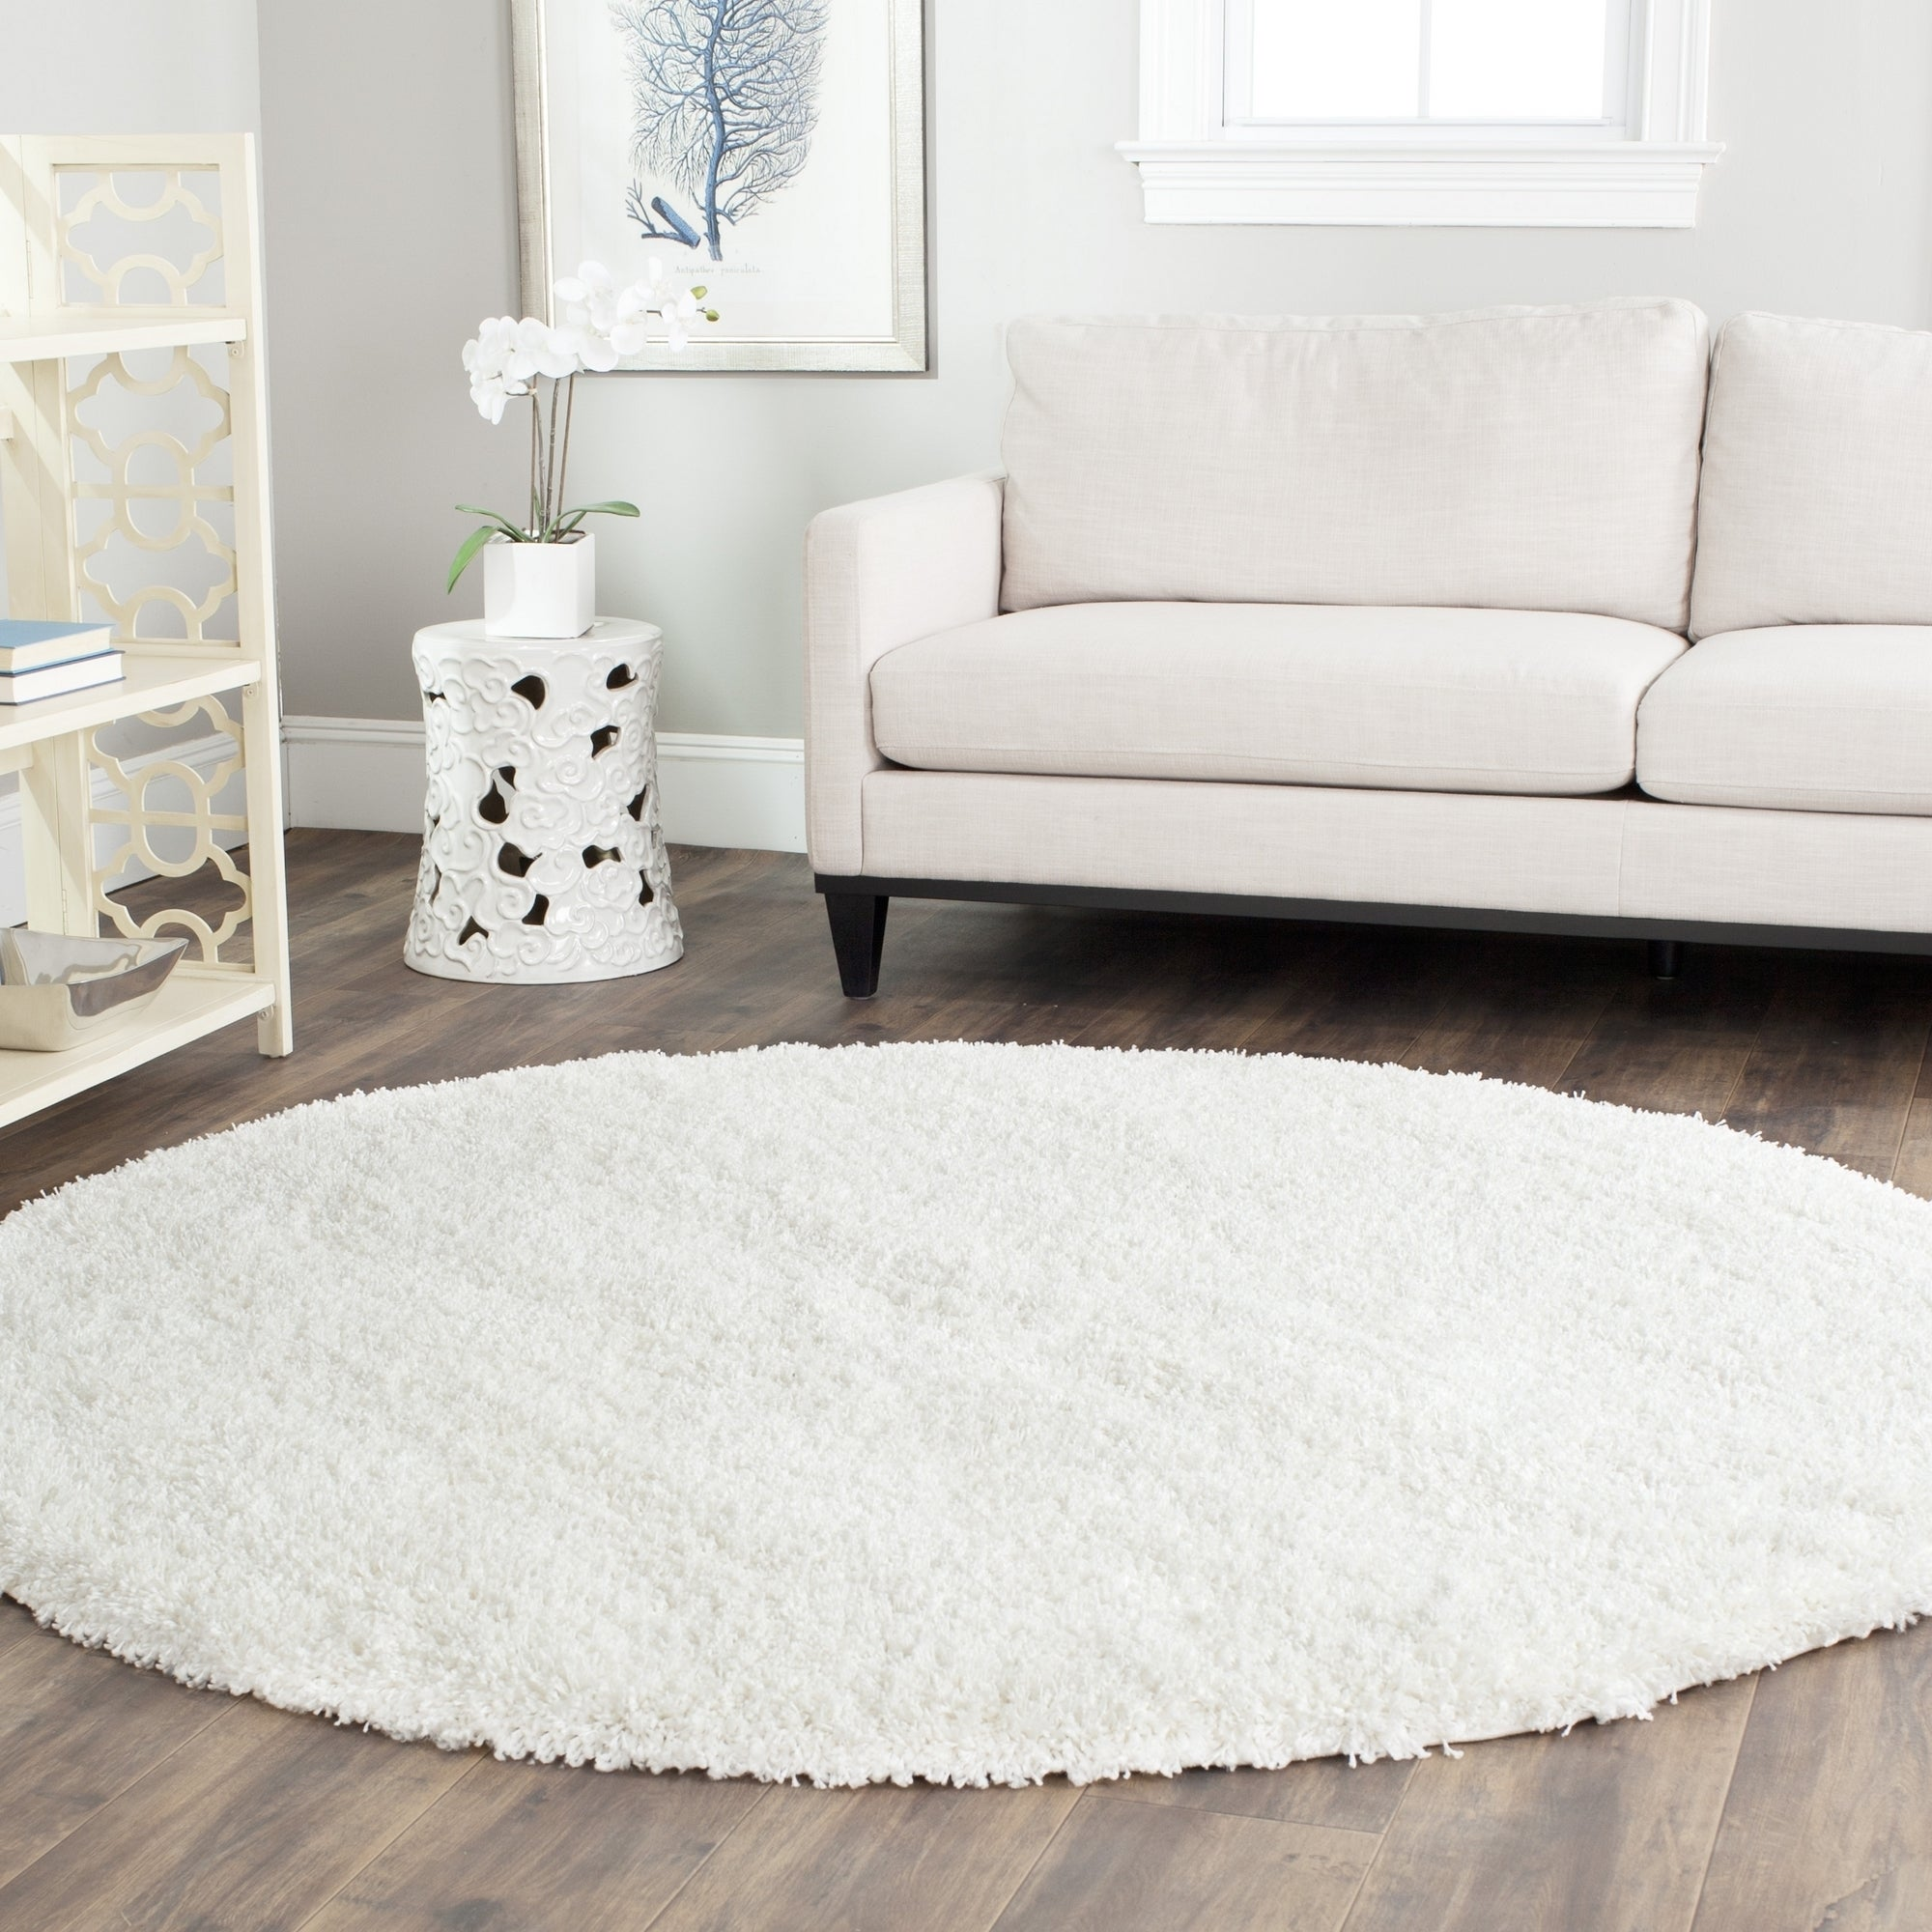 Shop Safavieh California Cozy Plush Milky White Shag Rug - 8\'6 Round ...